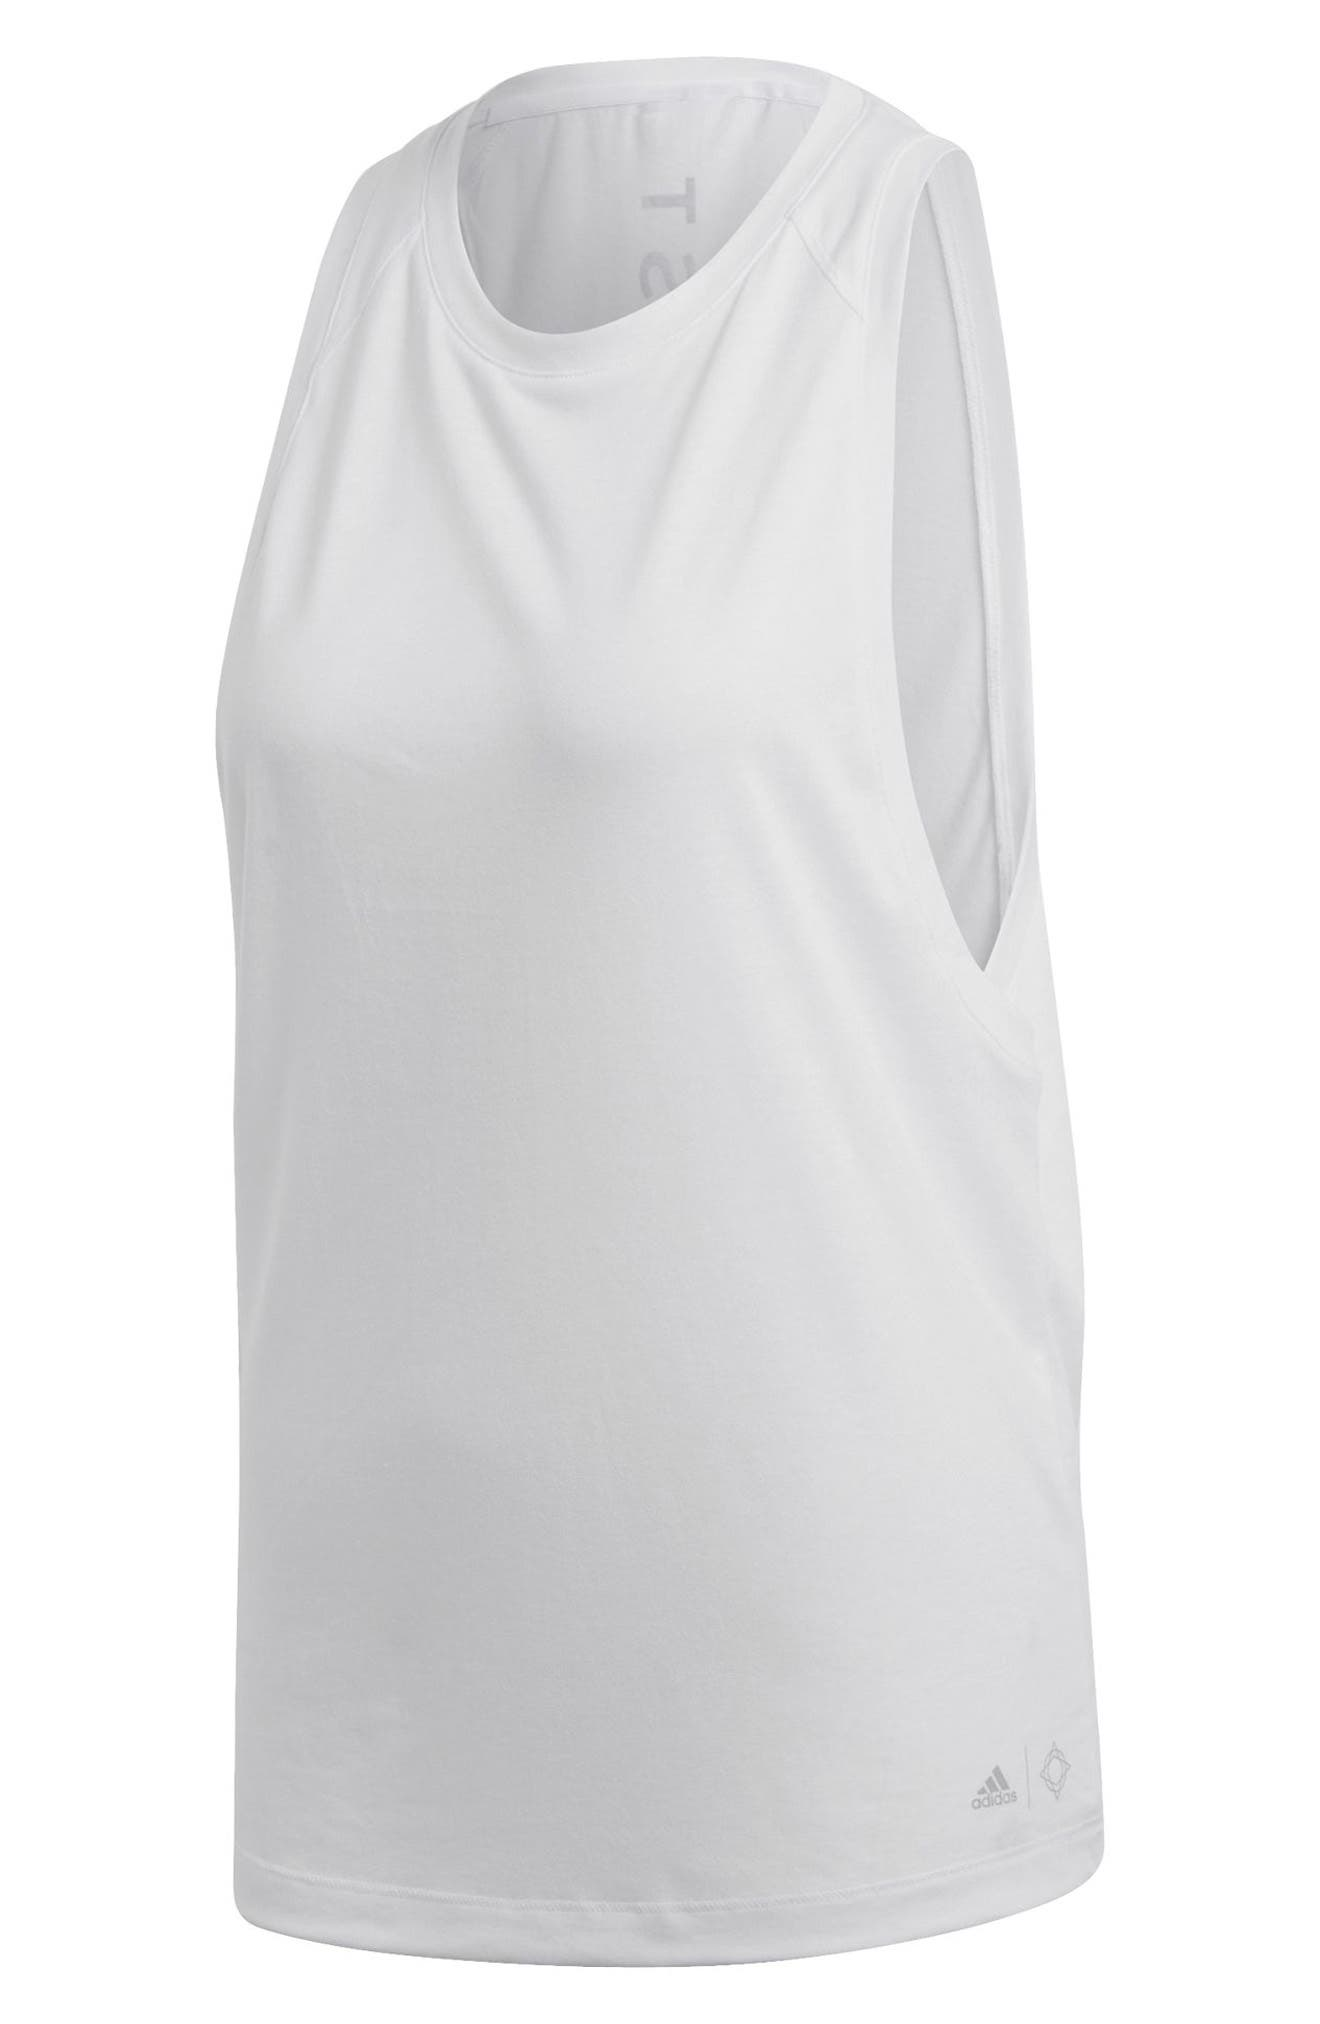 Wanderlust Parley Tank,                             Alternate thumbnail 8, color,                             White